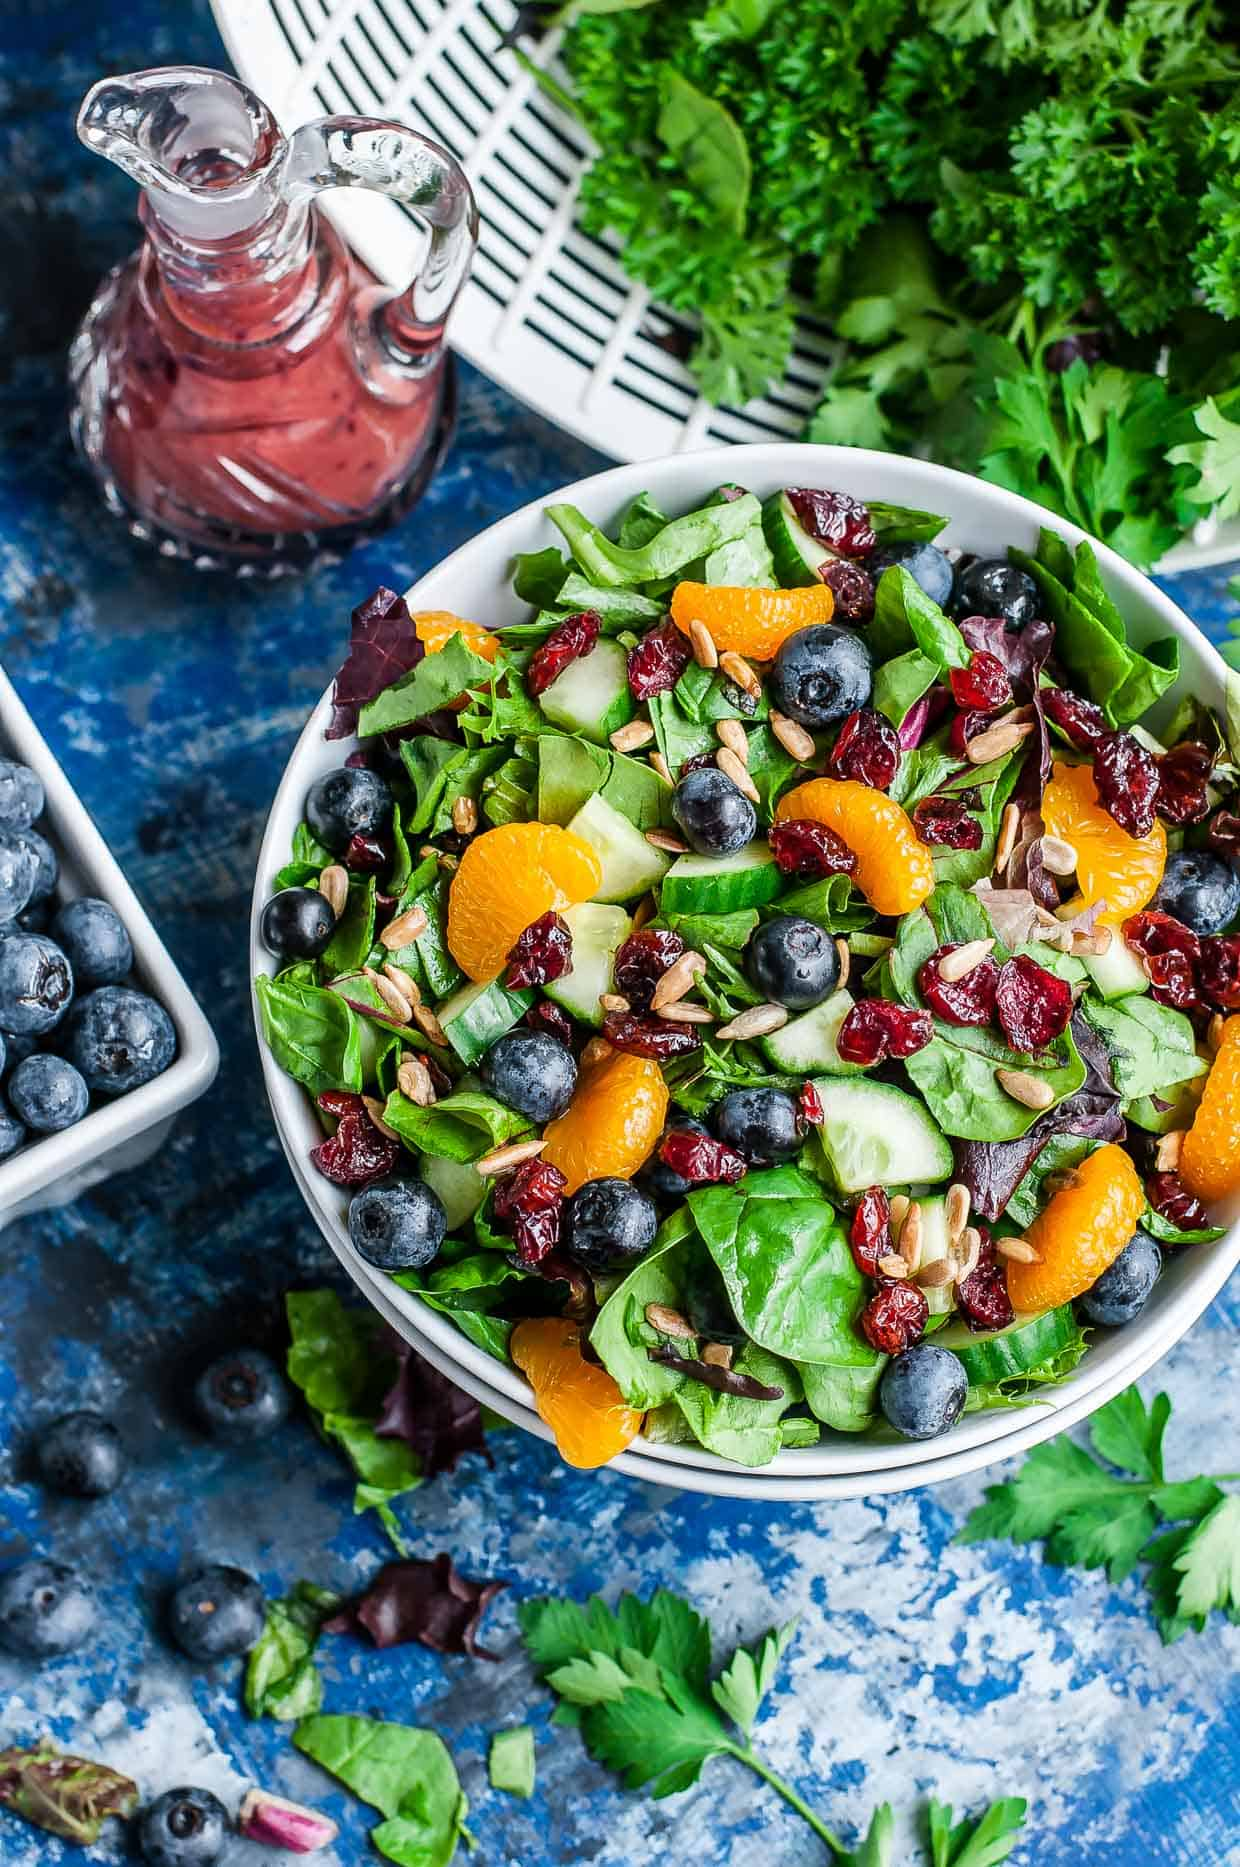 cranberry-blueberry-spring-mix-salad-blueberry-balsamic-dressing-recipe-peasandcrayons-1070